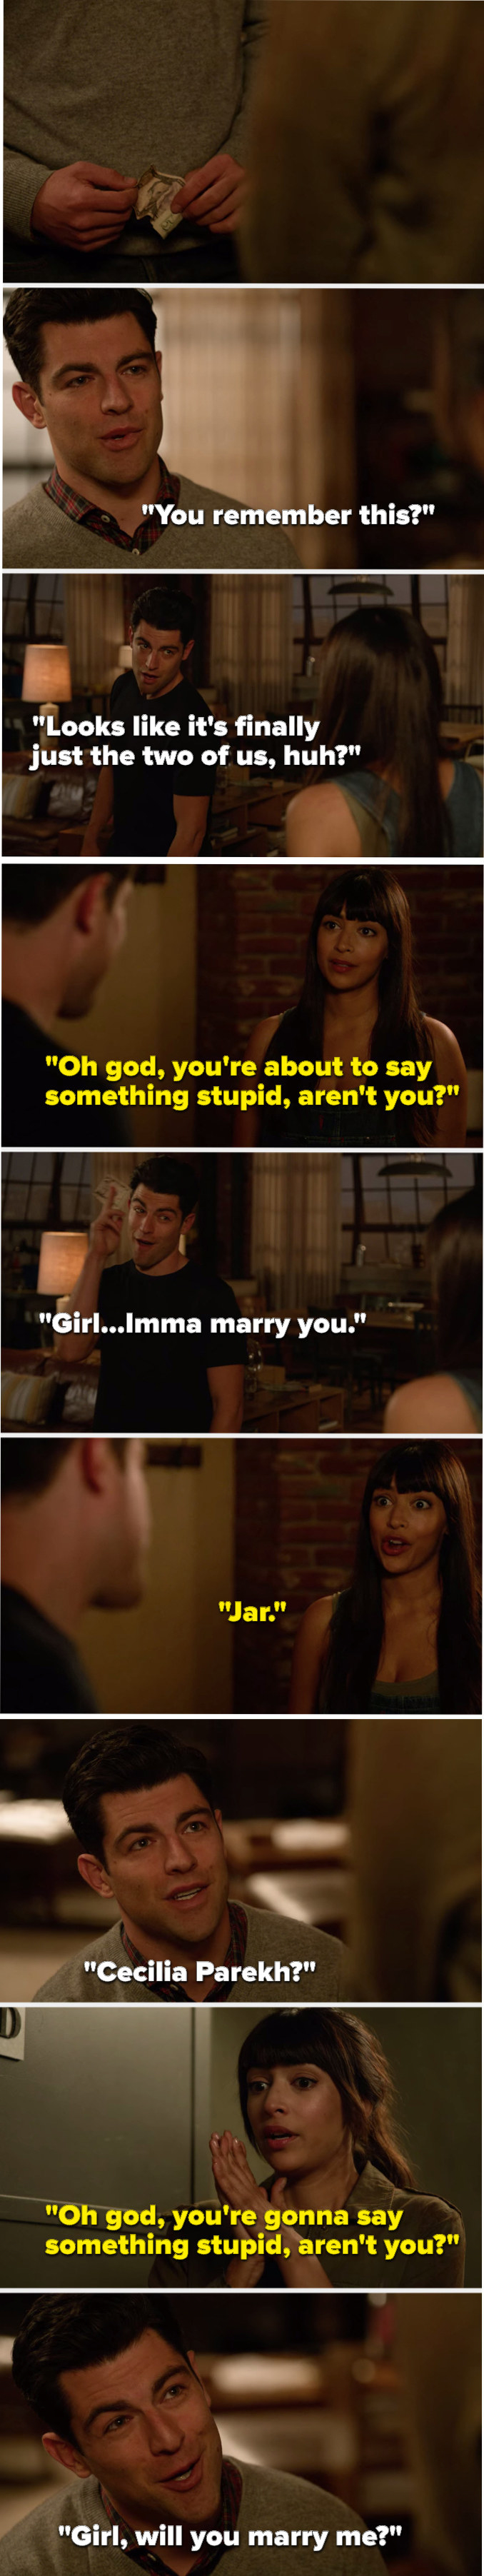 """Flashback Cece says, """"You're about to say something stupid,"""" Schmidt holds a fiver and says, """"Girl Imma marry you,"""" Cece says, """"Jar,"""" present Cece says, """"You're gonna say something stupid,"""" and Schmidt says, """"Girl, will you marry me"""""""